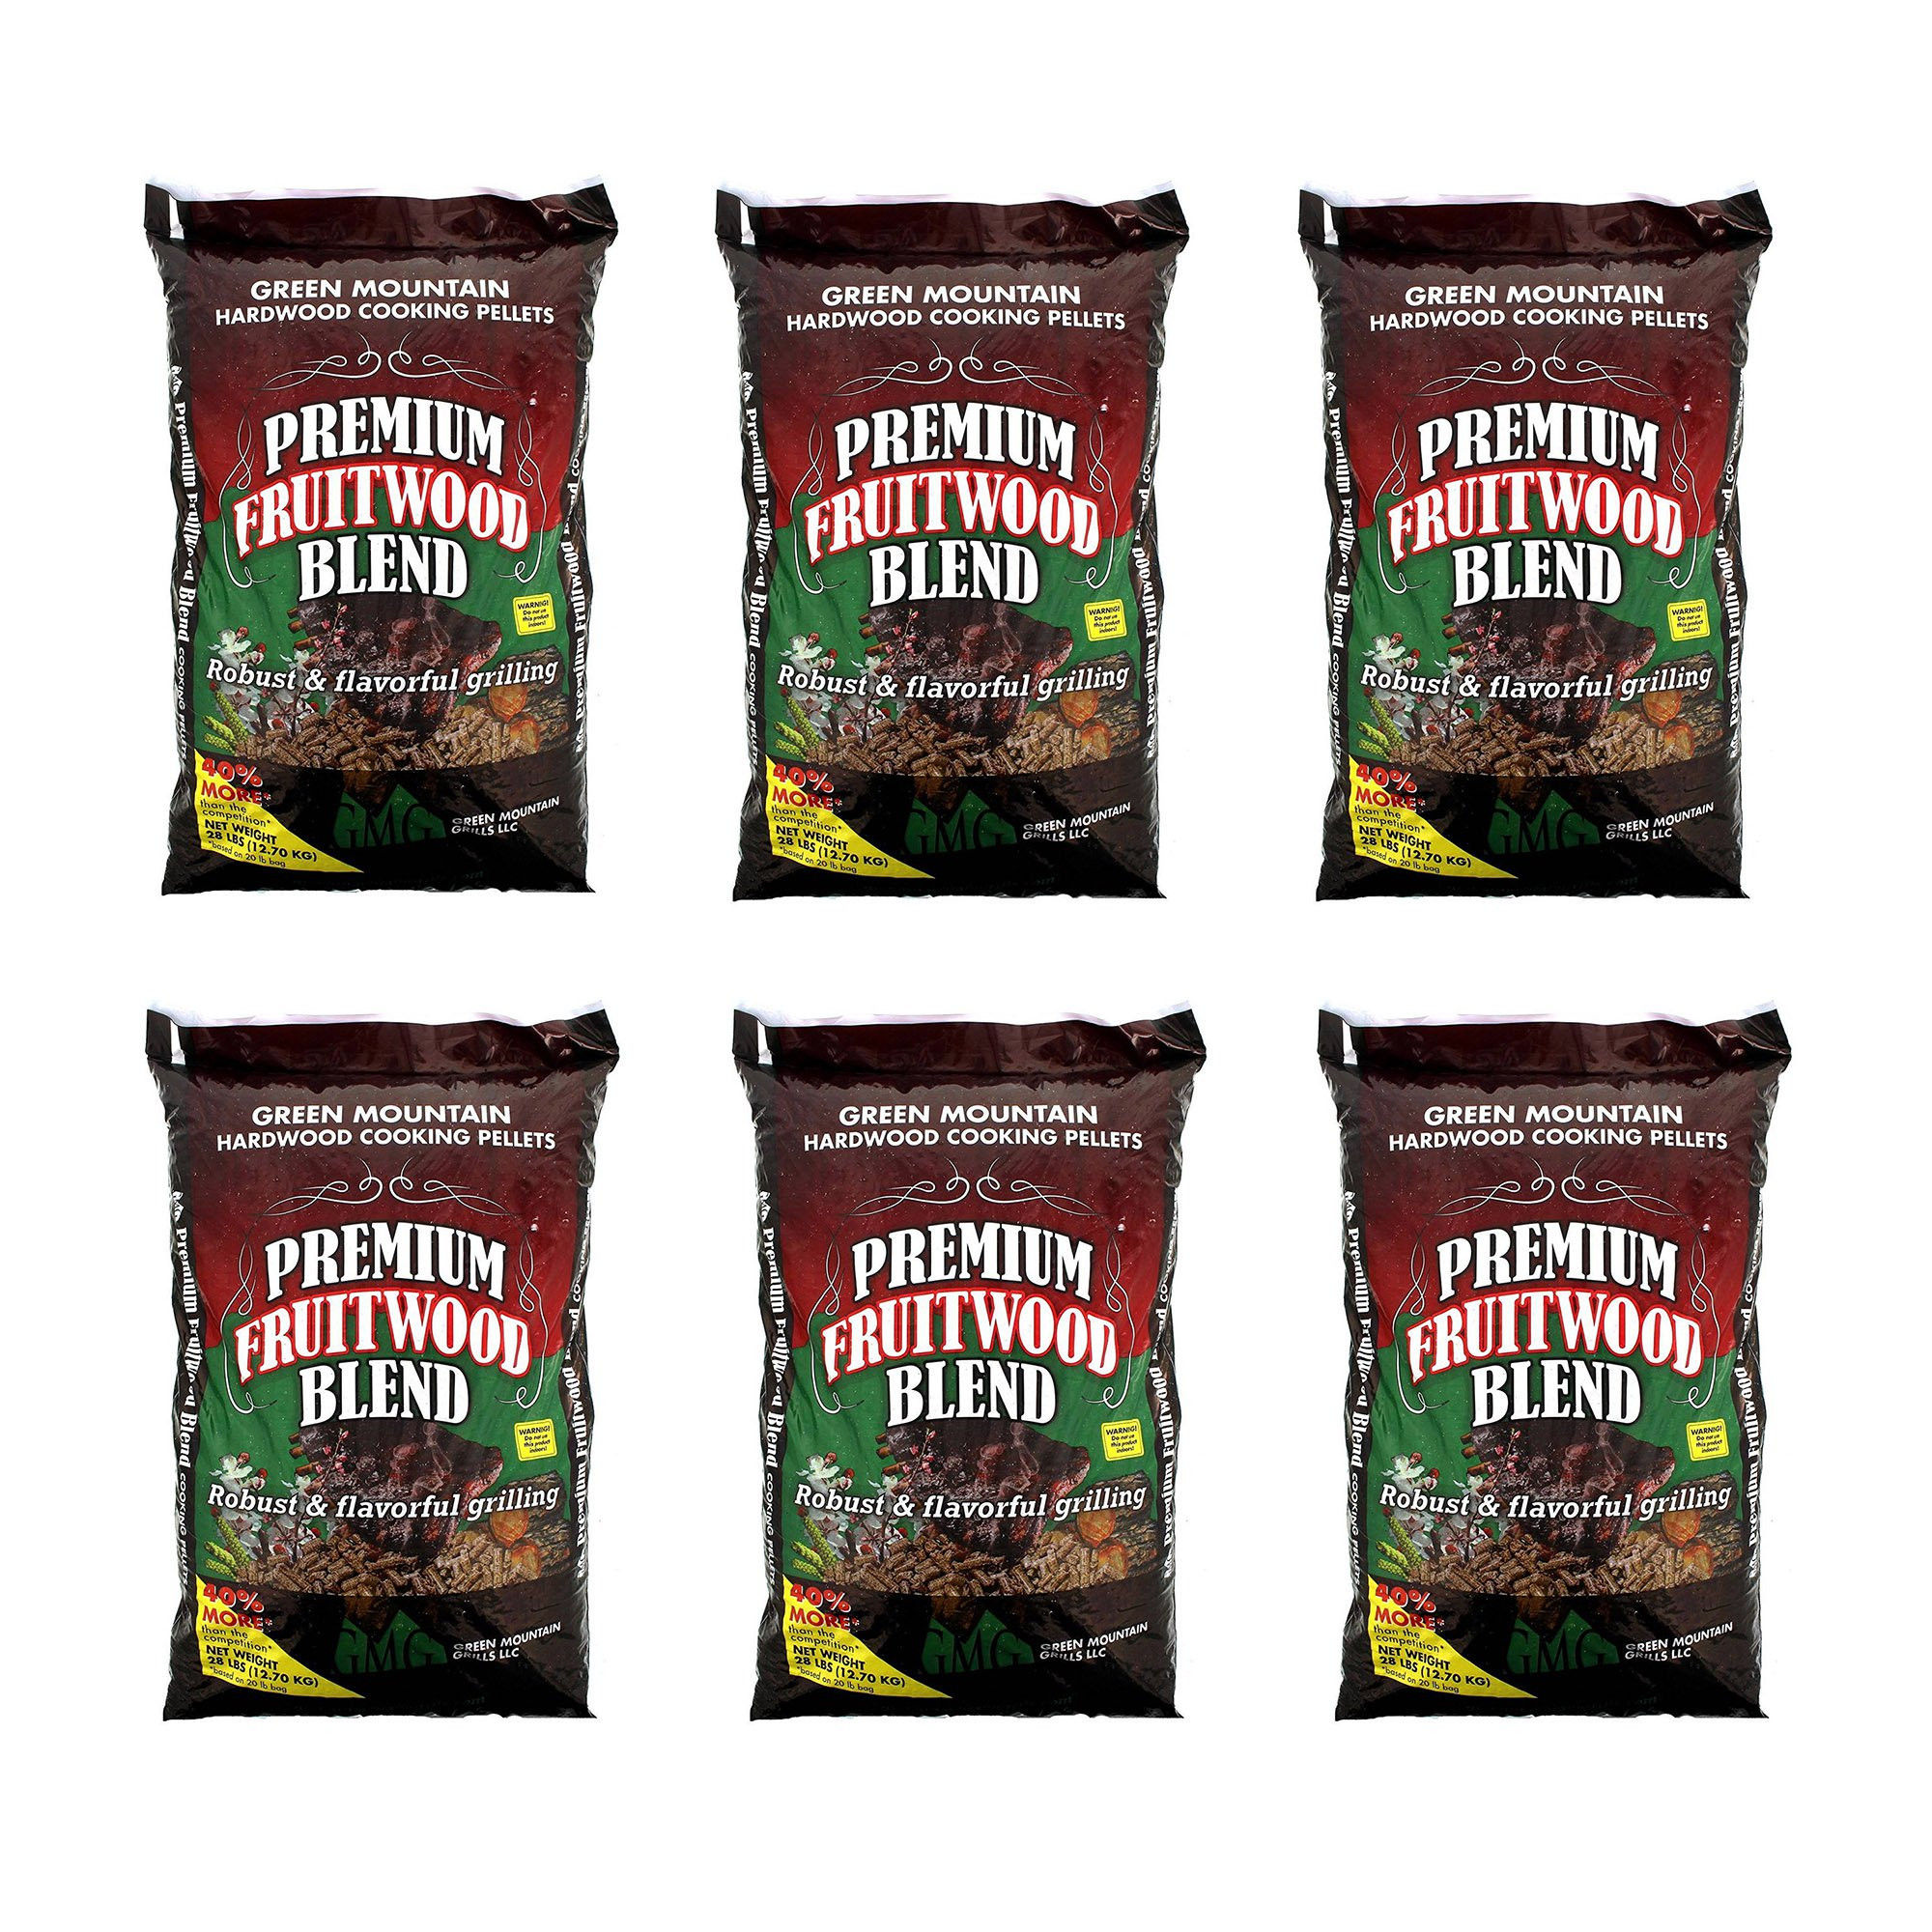 Green Mountain Premium Fruitwood Pure Hardwood Grilling Cooking Pellets (6 Pack)